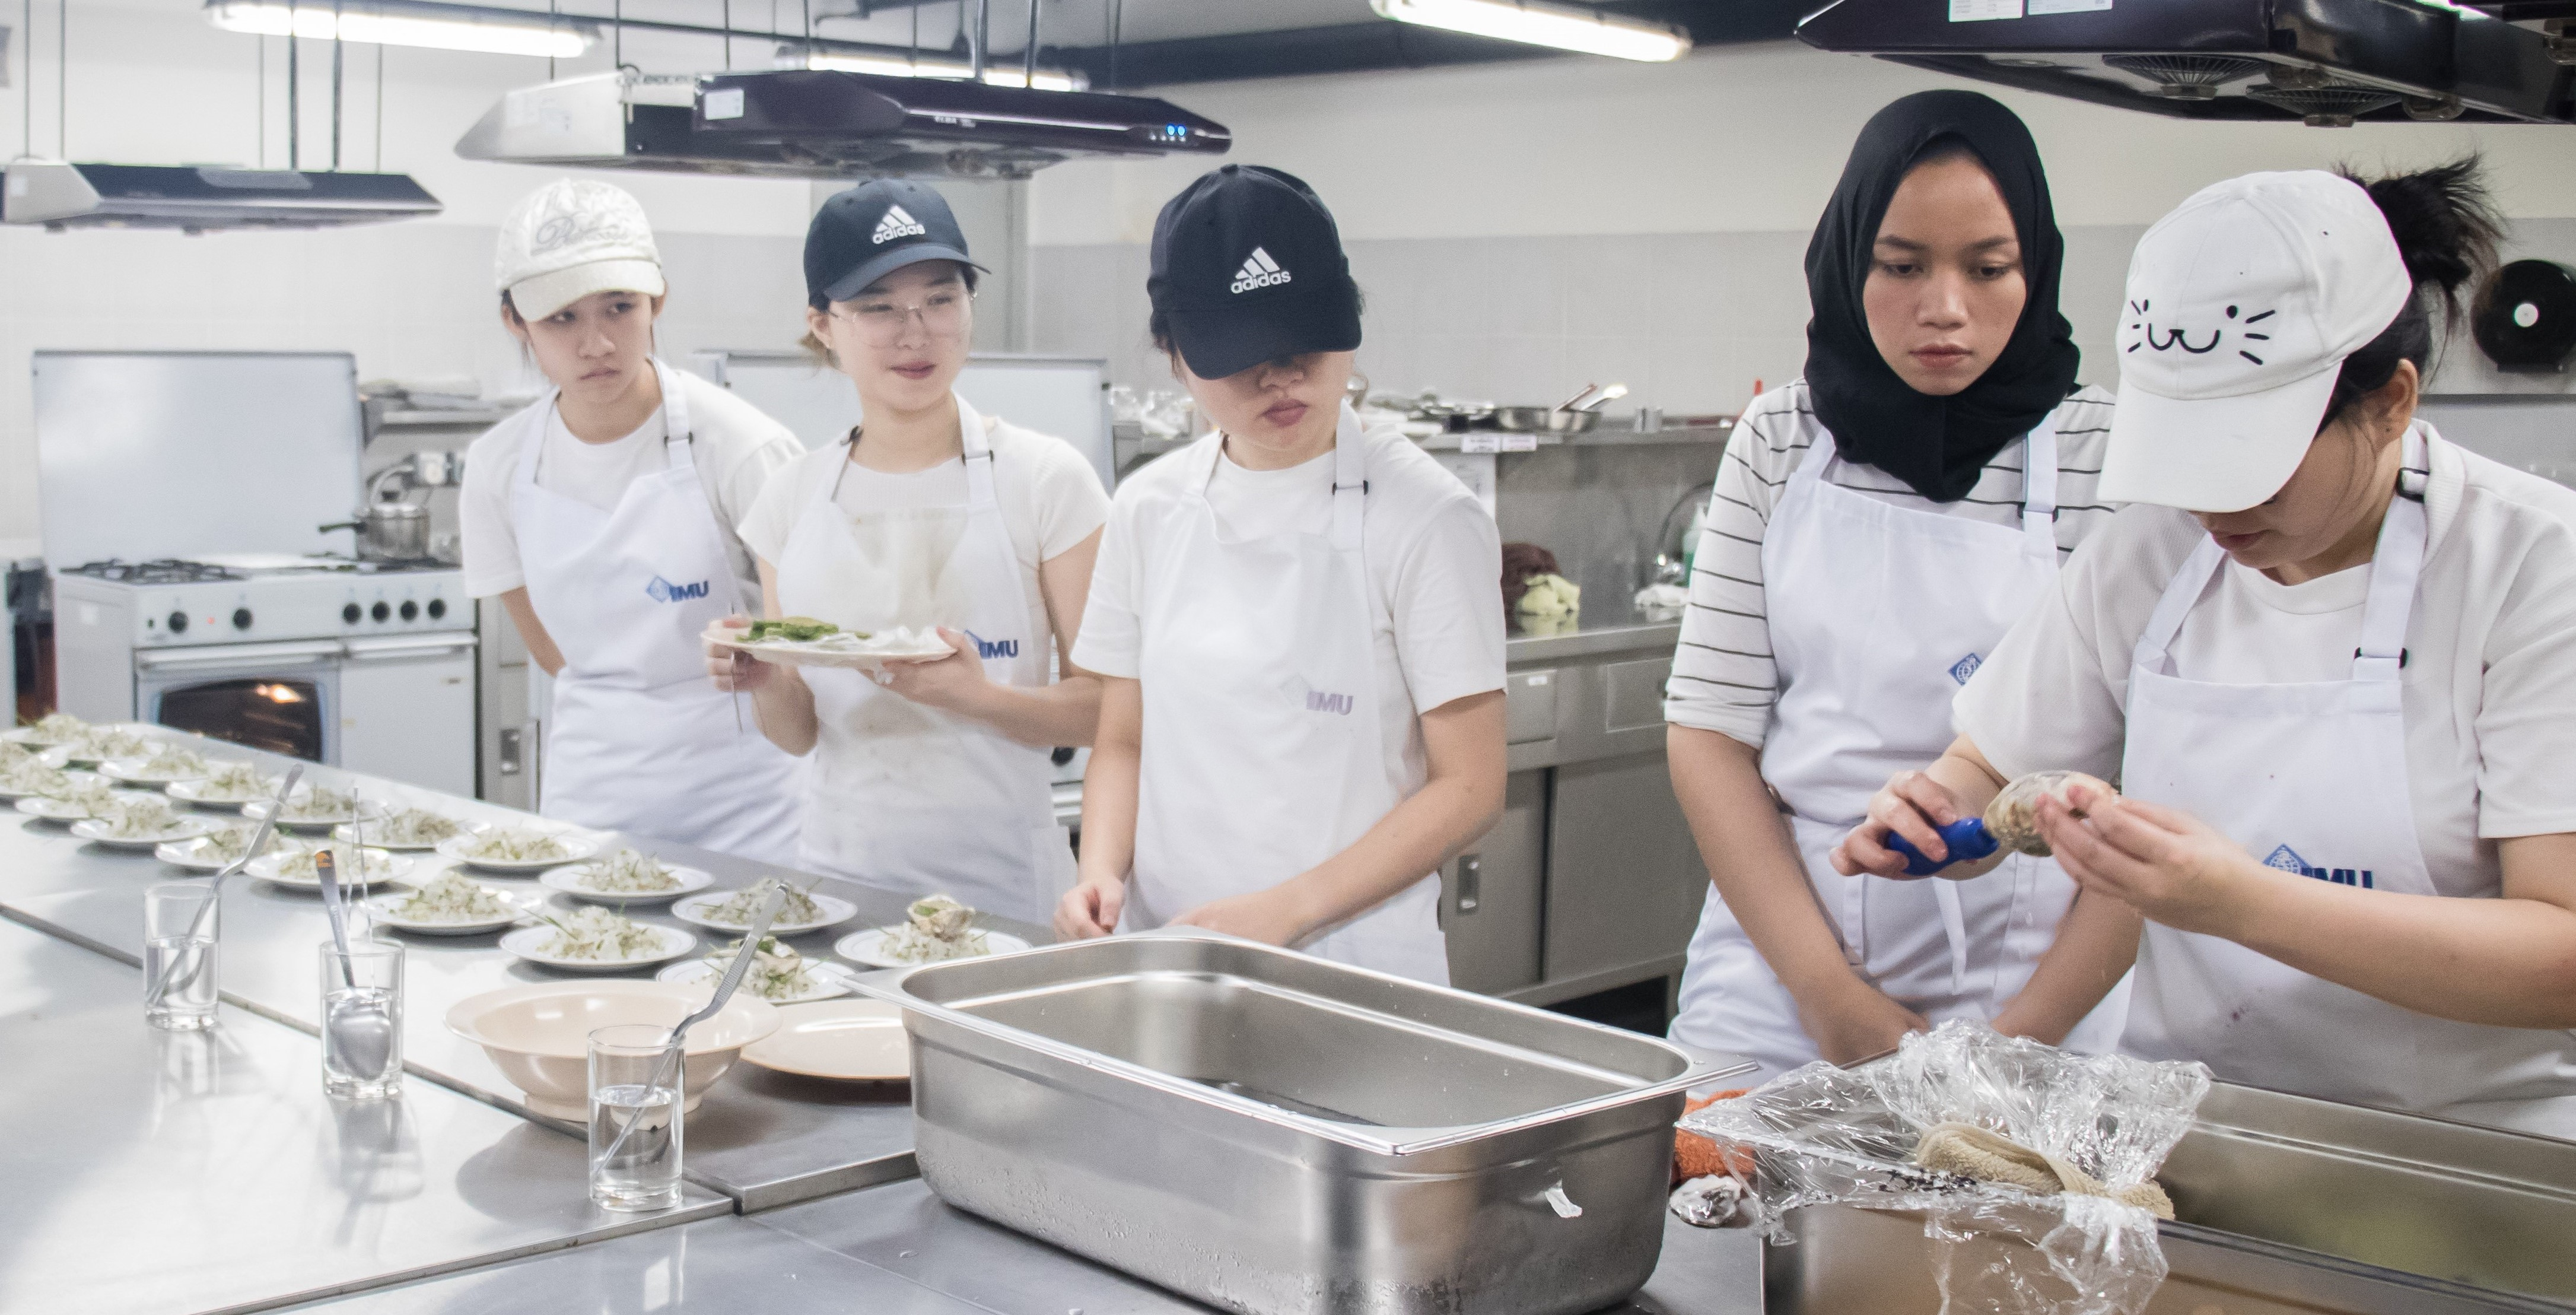 IMU dietetics students gain skills to promote healthy diets